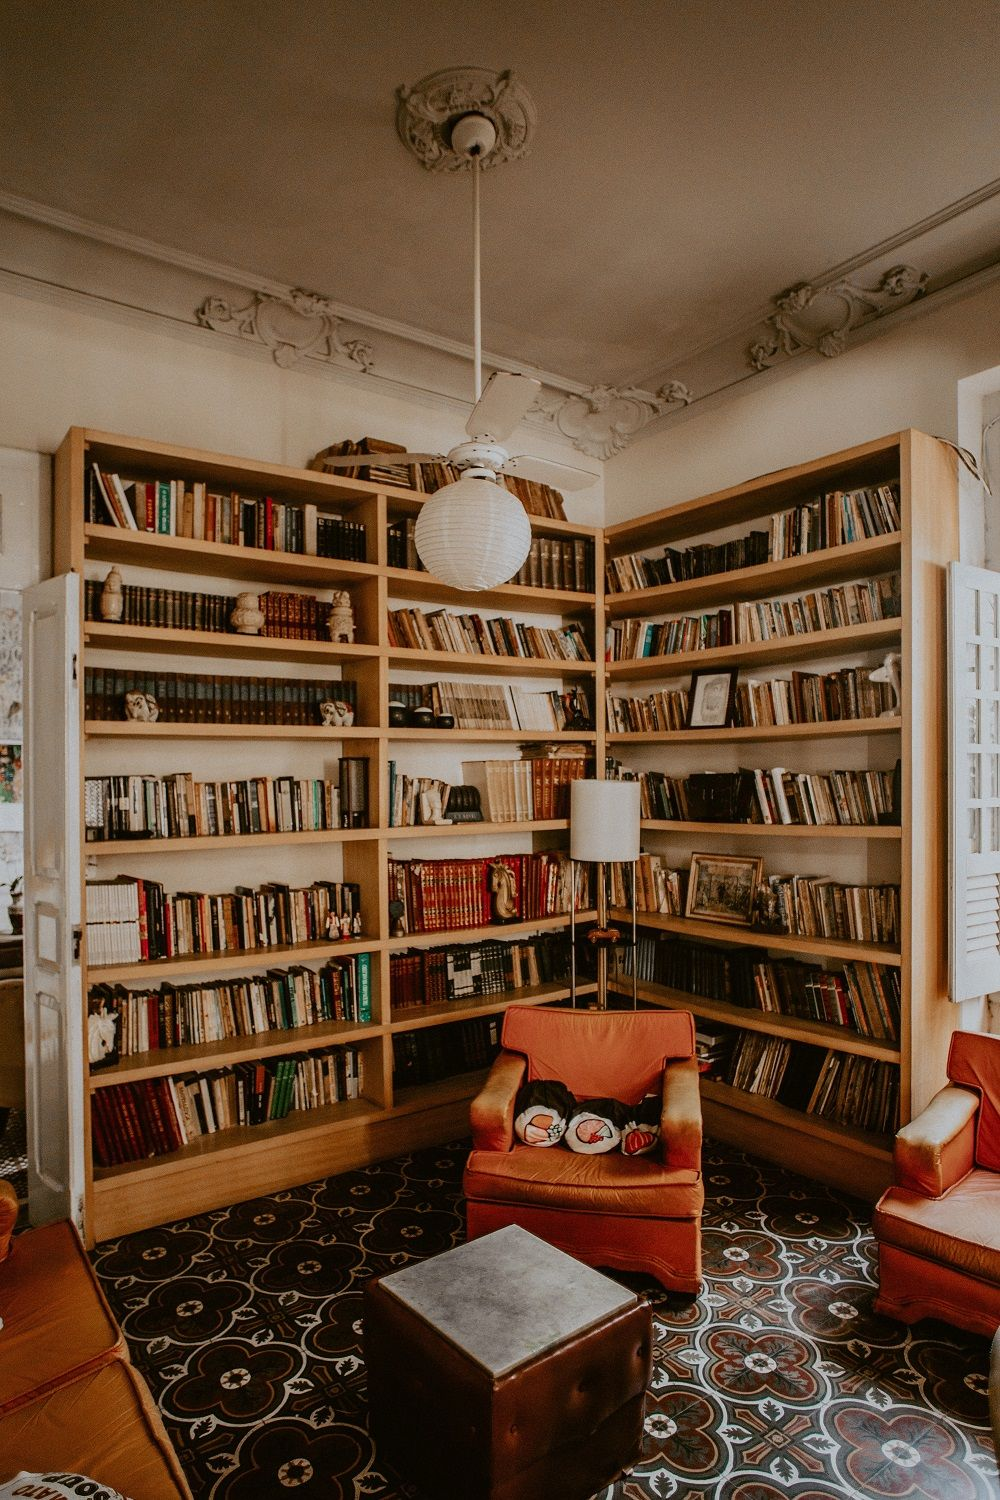 Smart Home Library Design Ideas for Your Home   Diy apartment ...